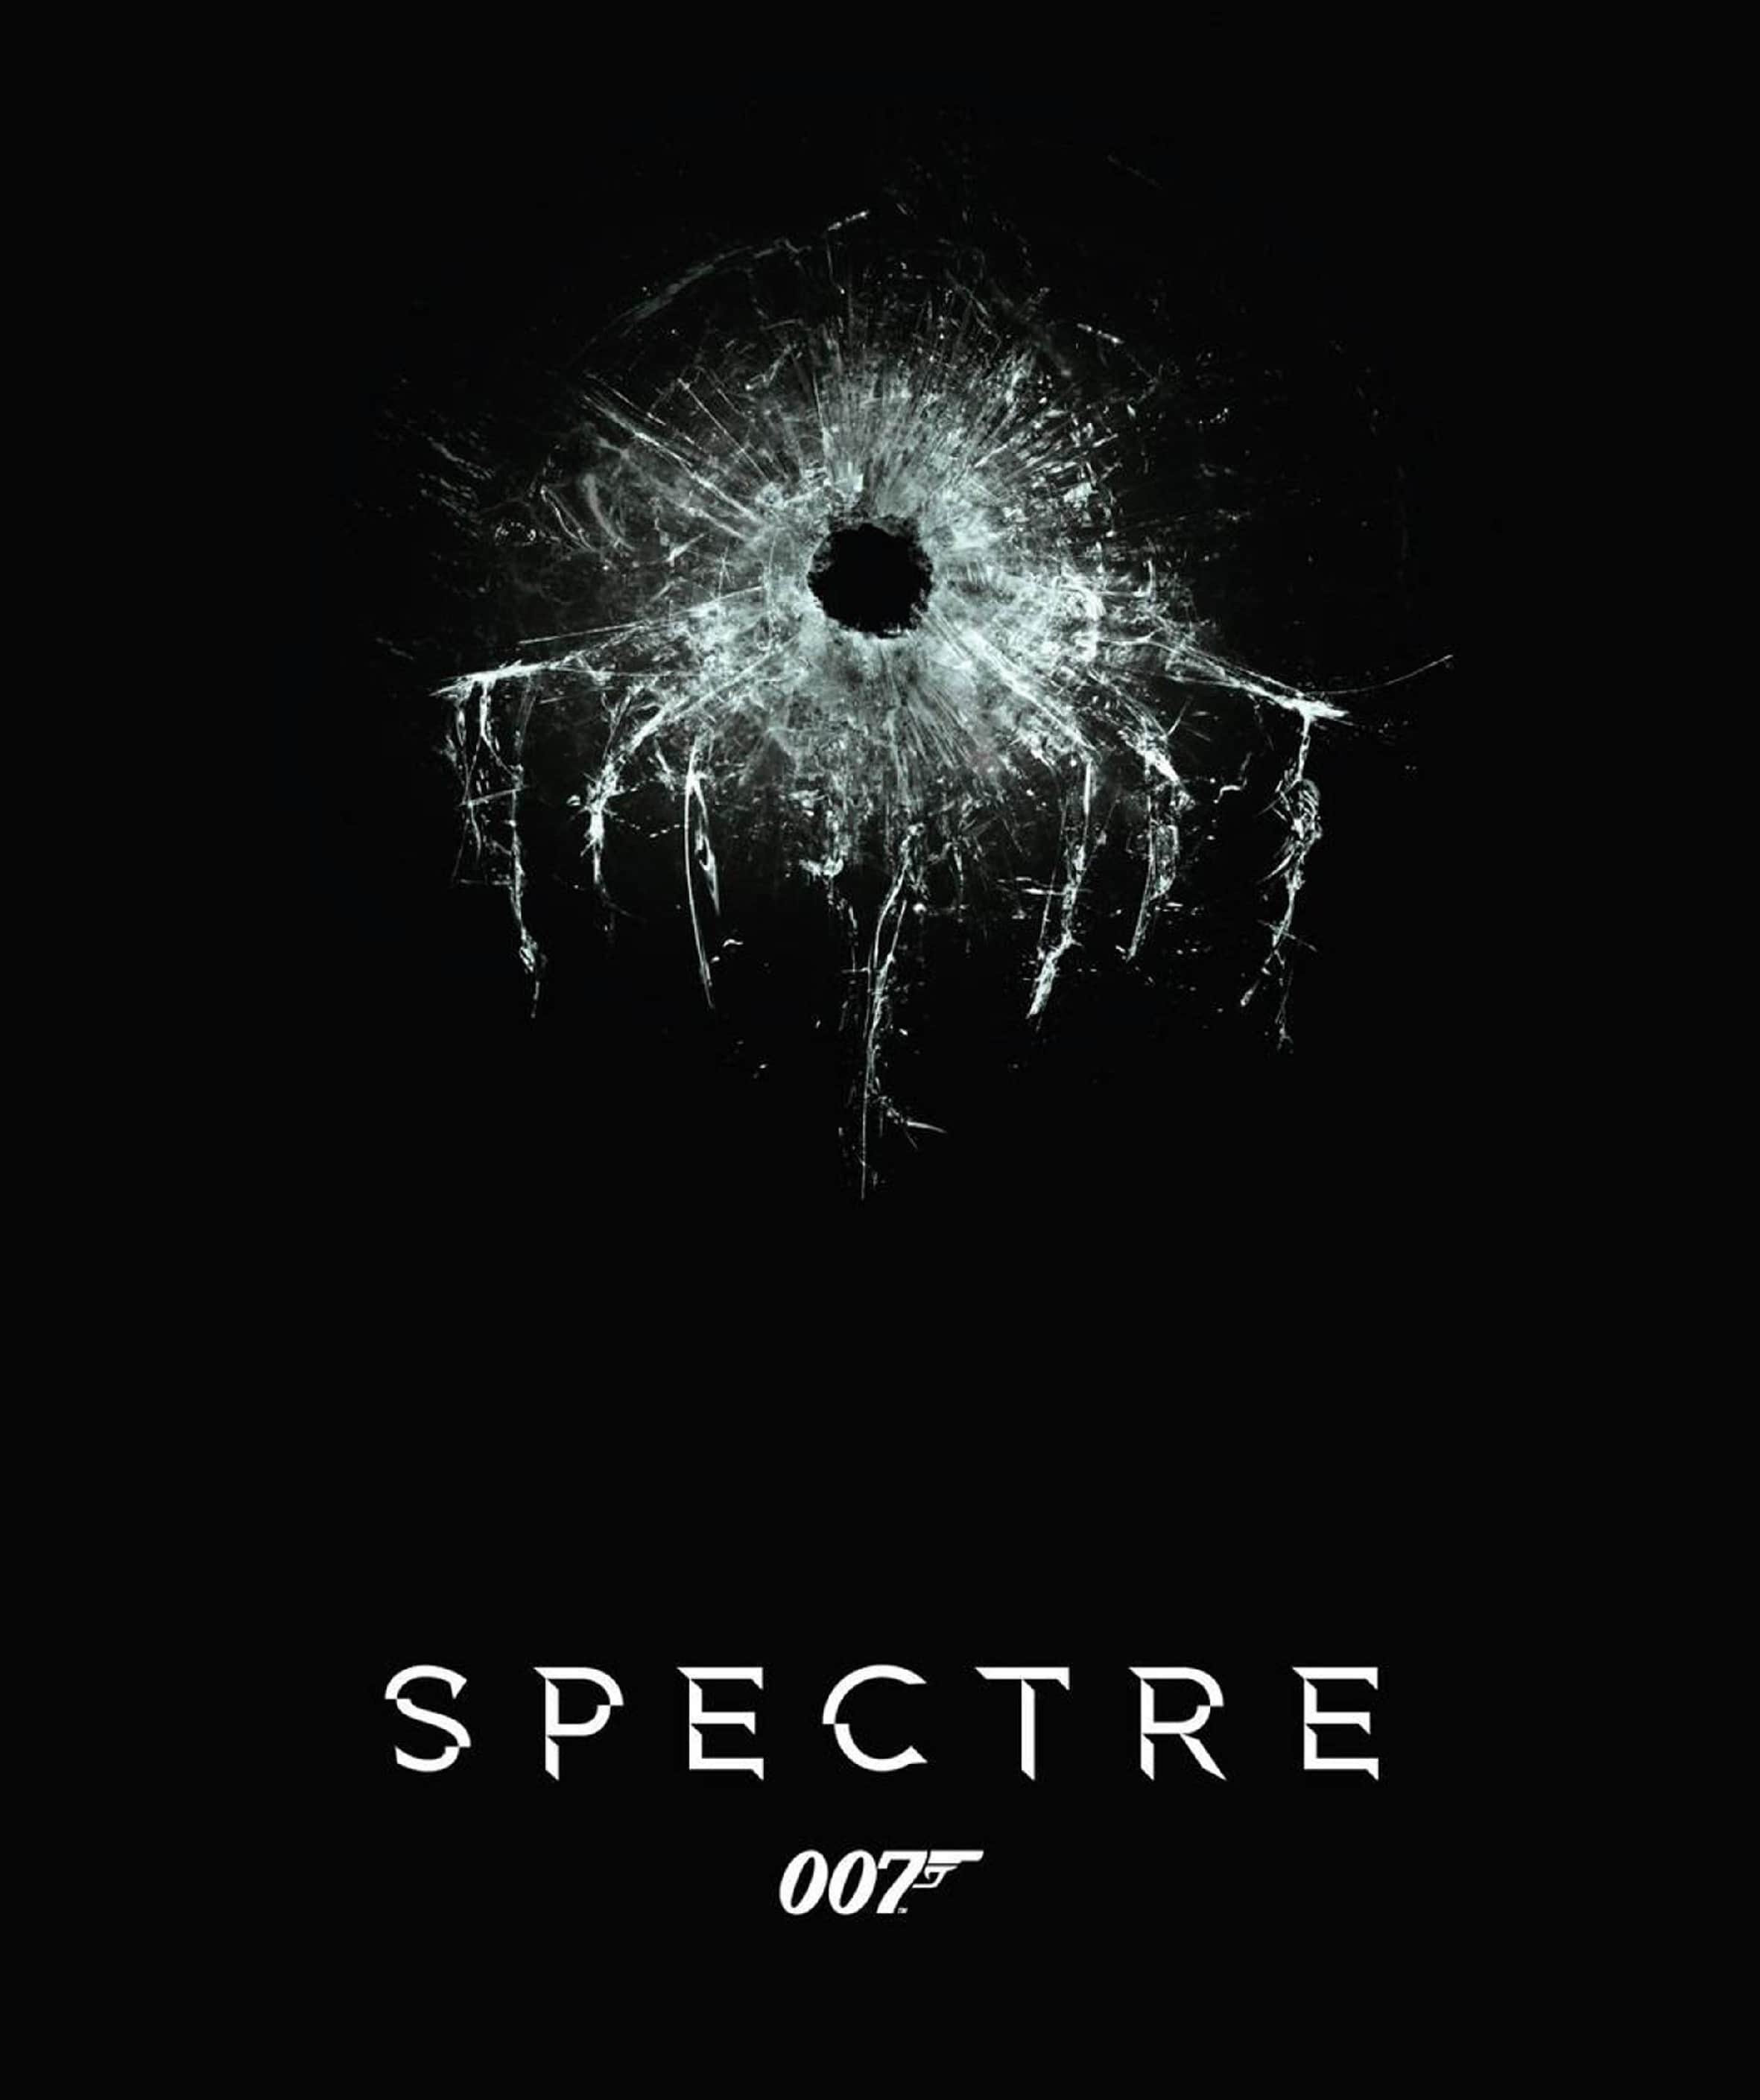 Spectre For mobile